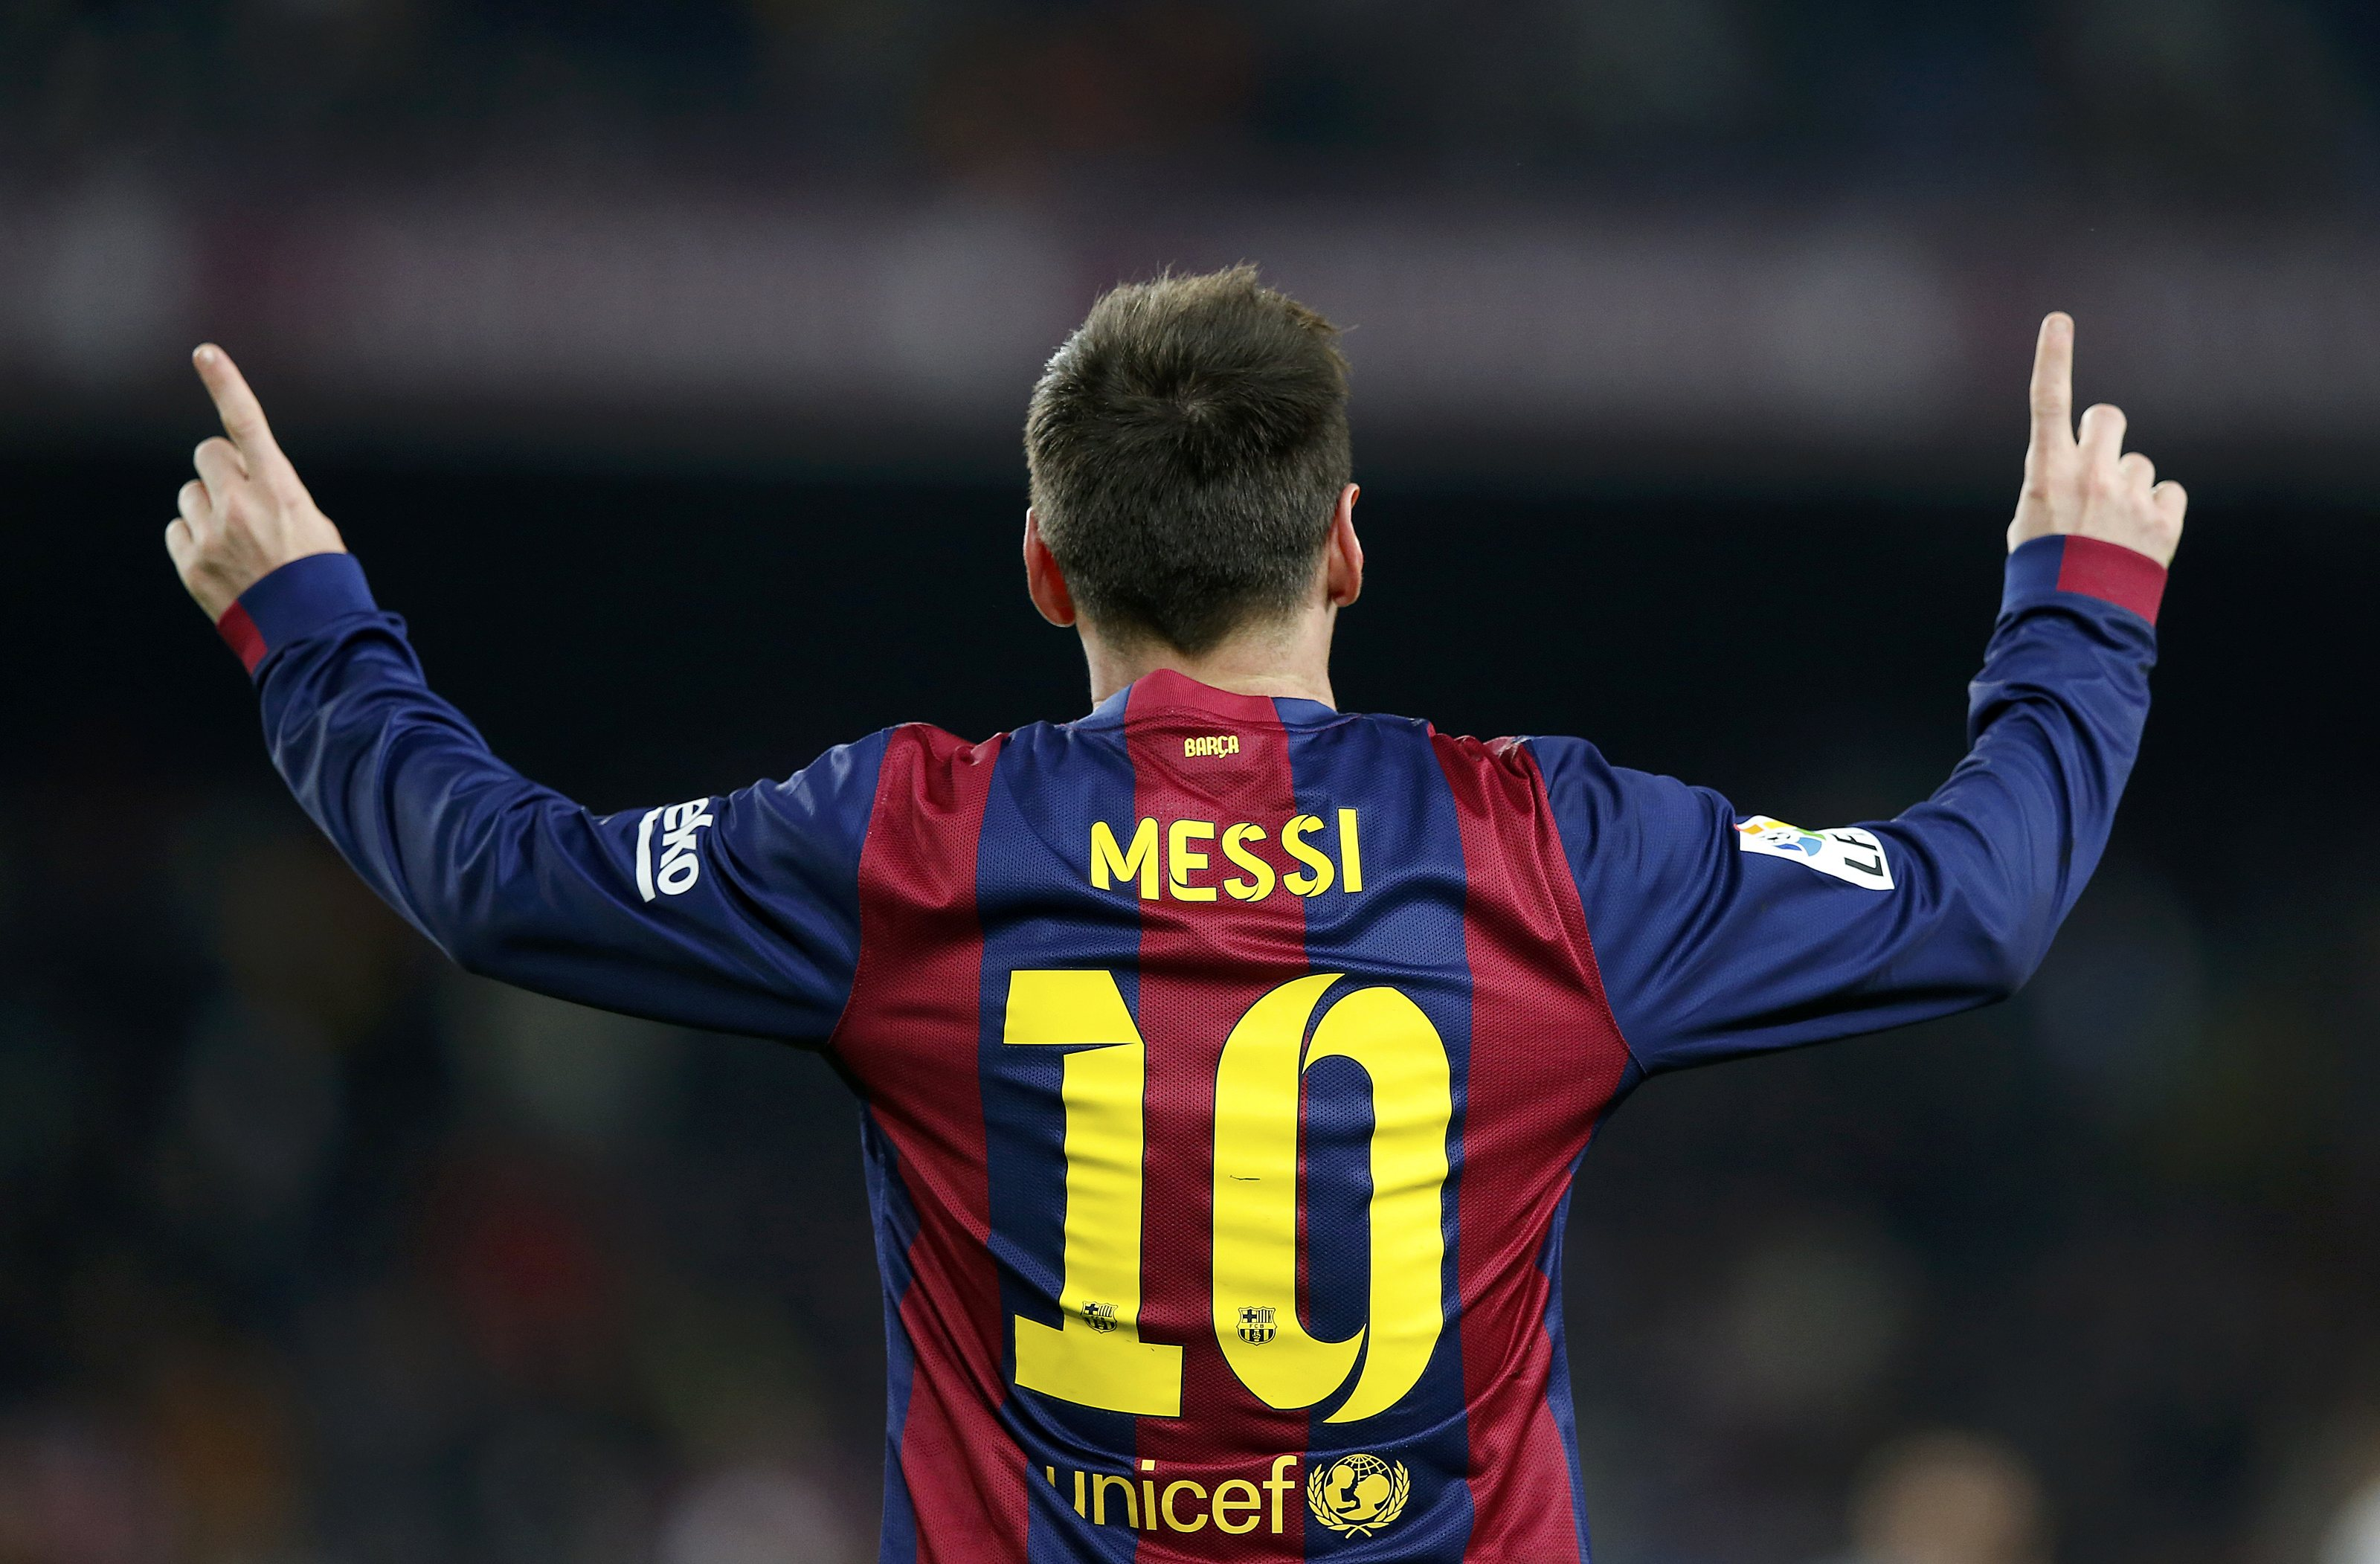 Barcelona's Lionel Messi celebrates after scoring a goal during their King's Cup quarter-final first leg soccer match in Barcelona